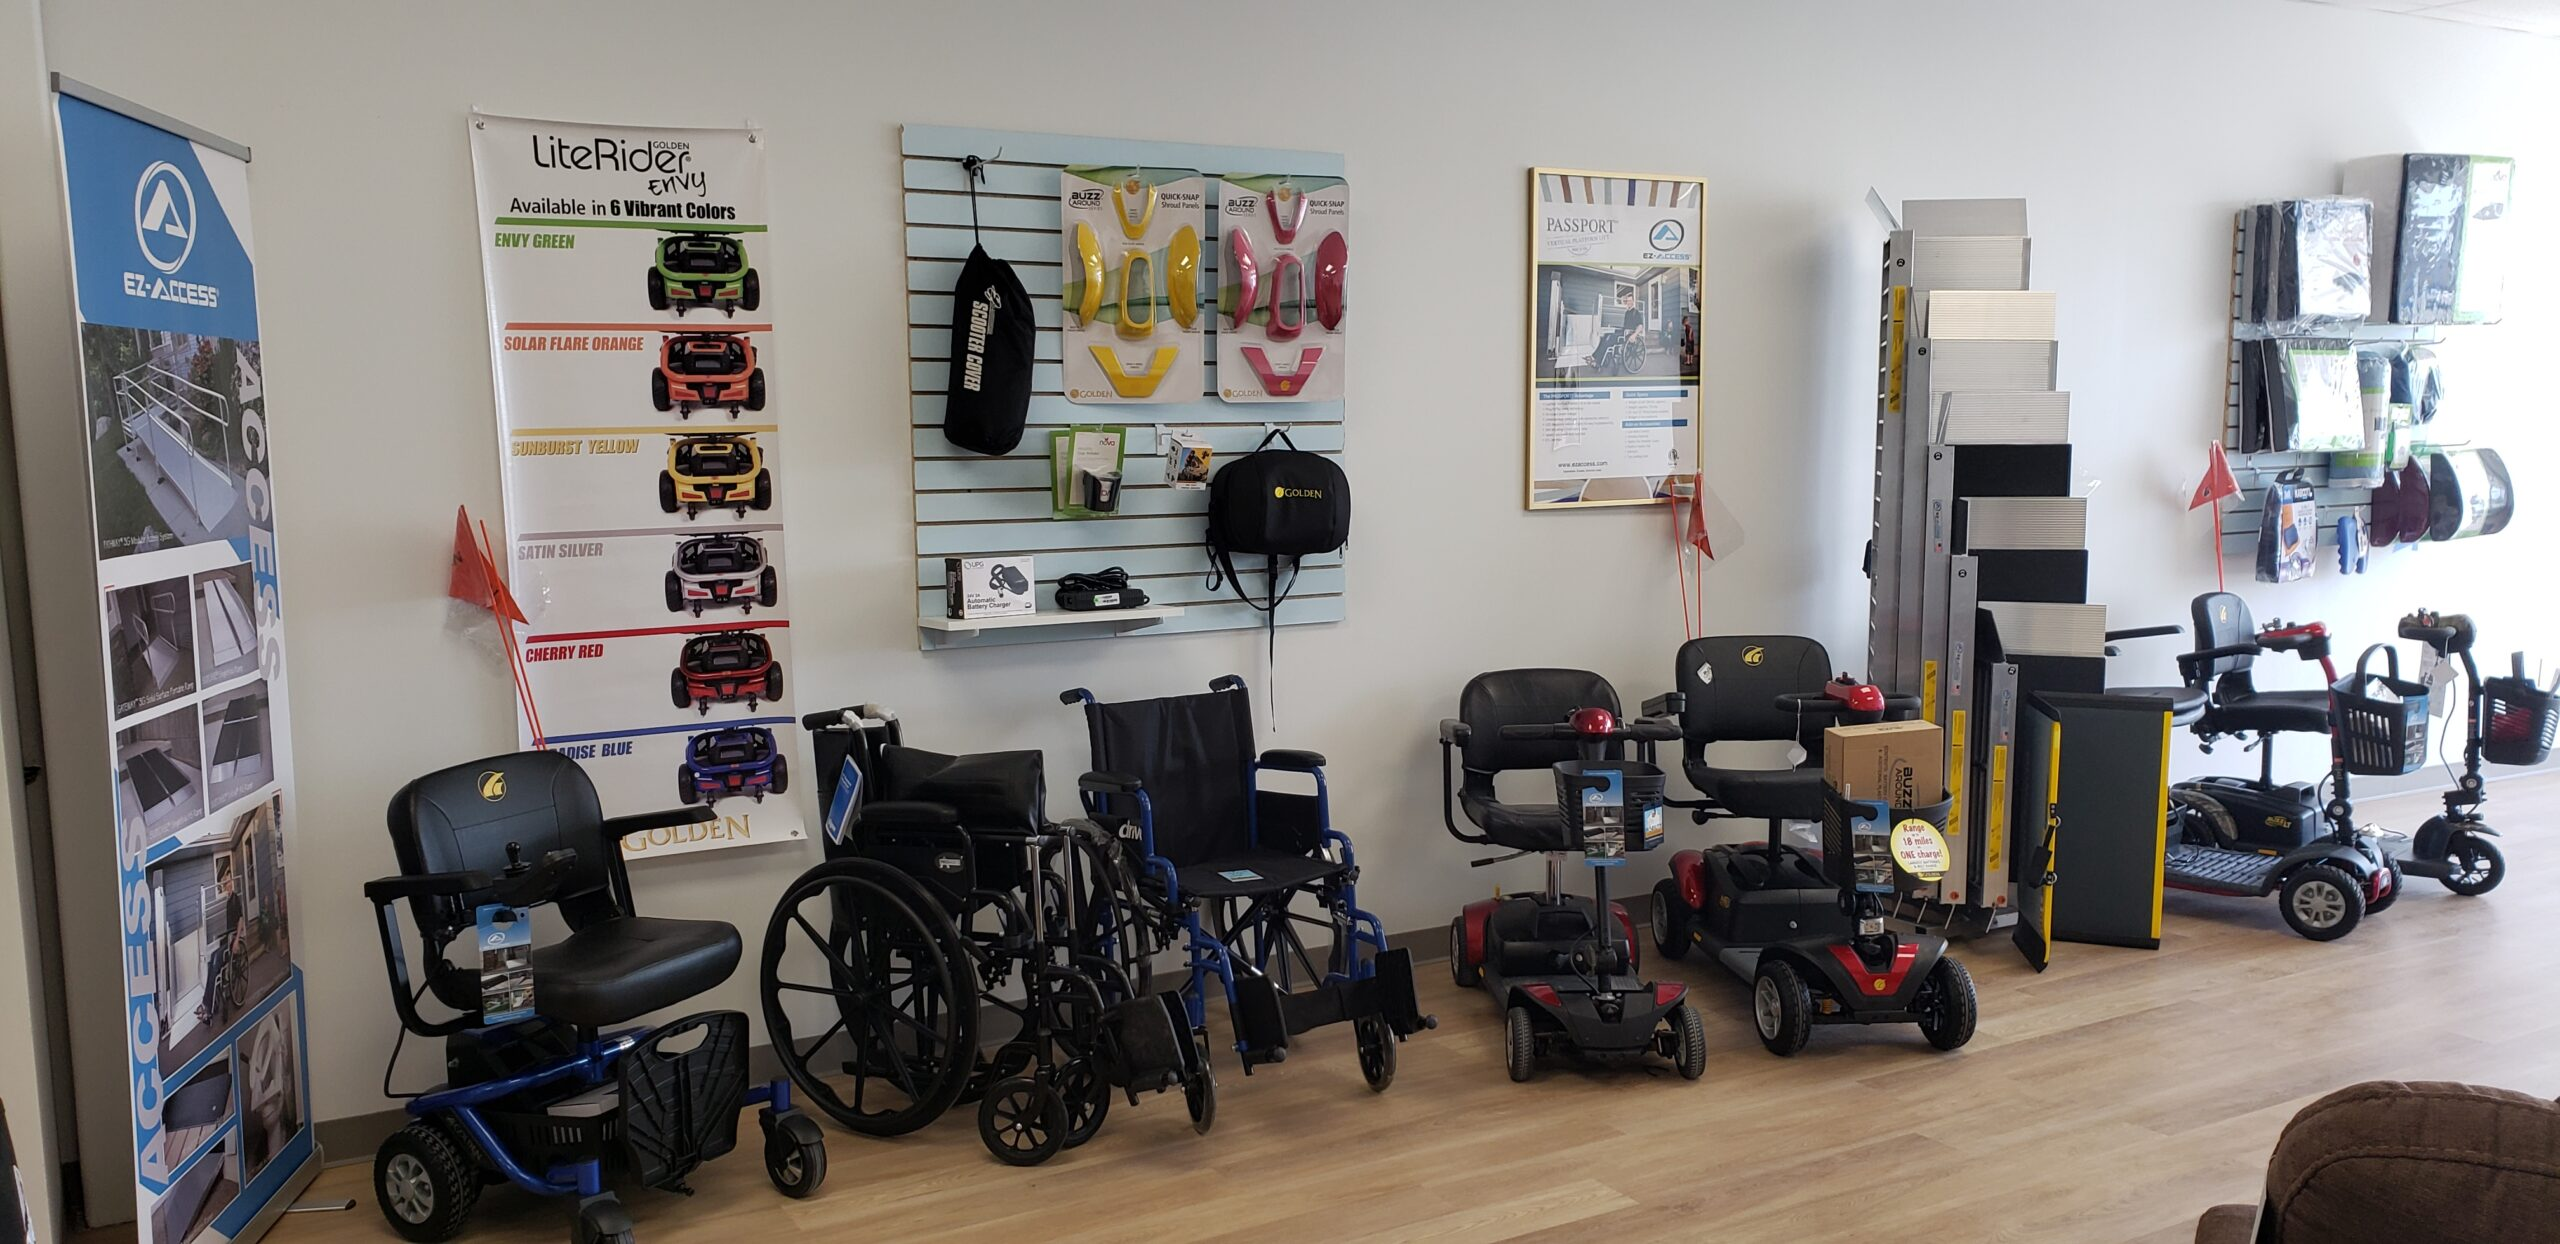 My Mobility offers an array of power wheelchairs and power mobility products.